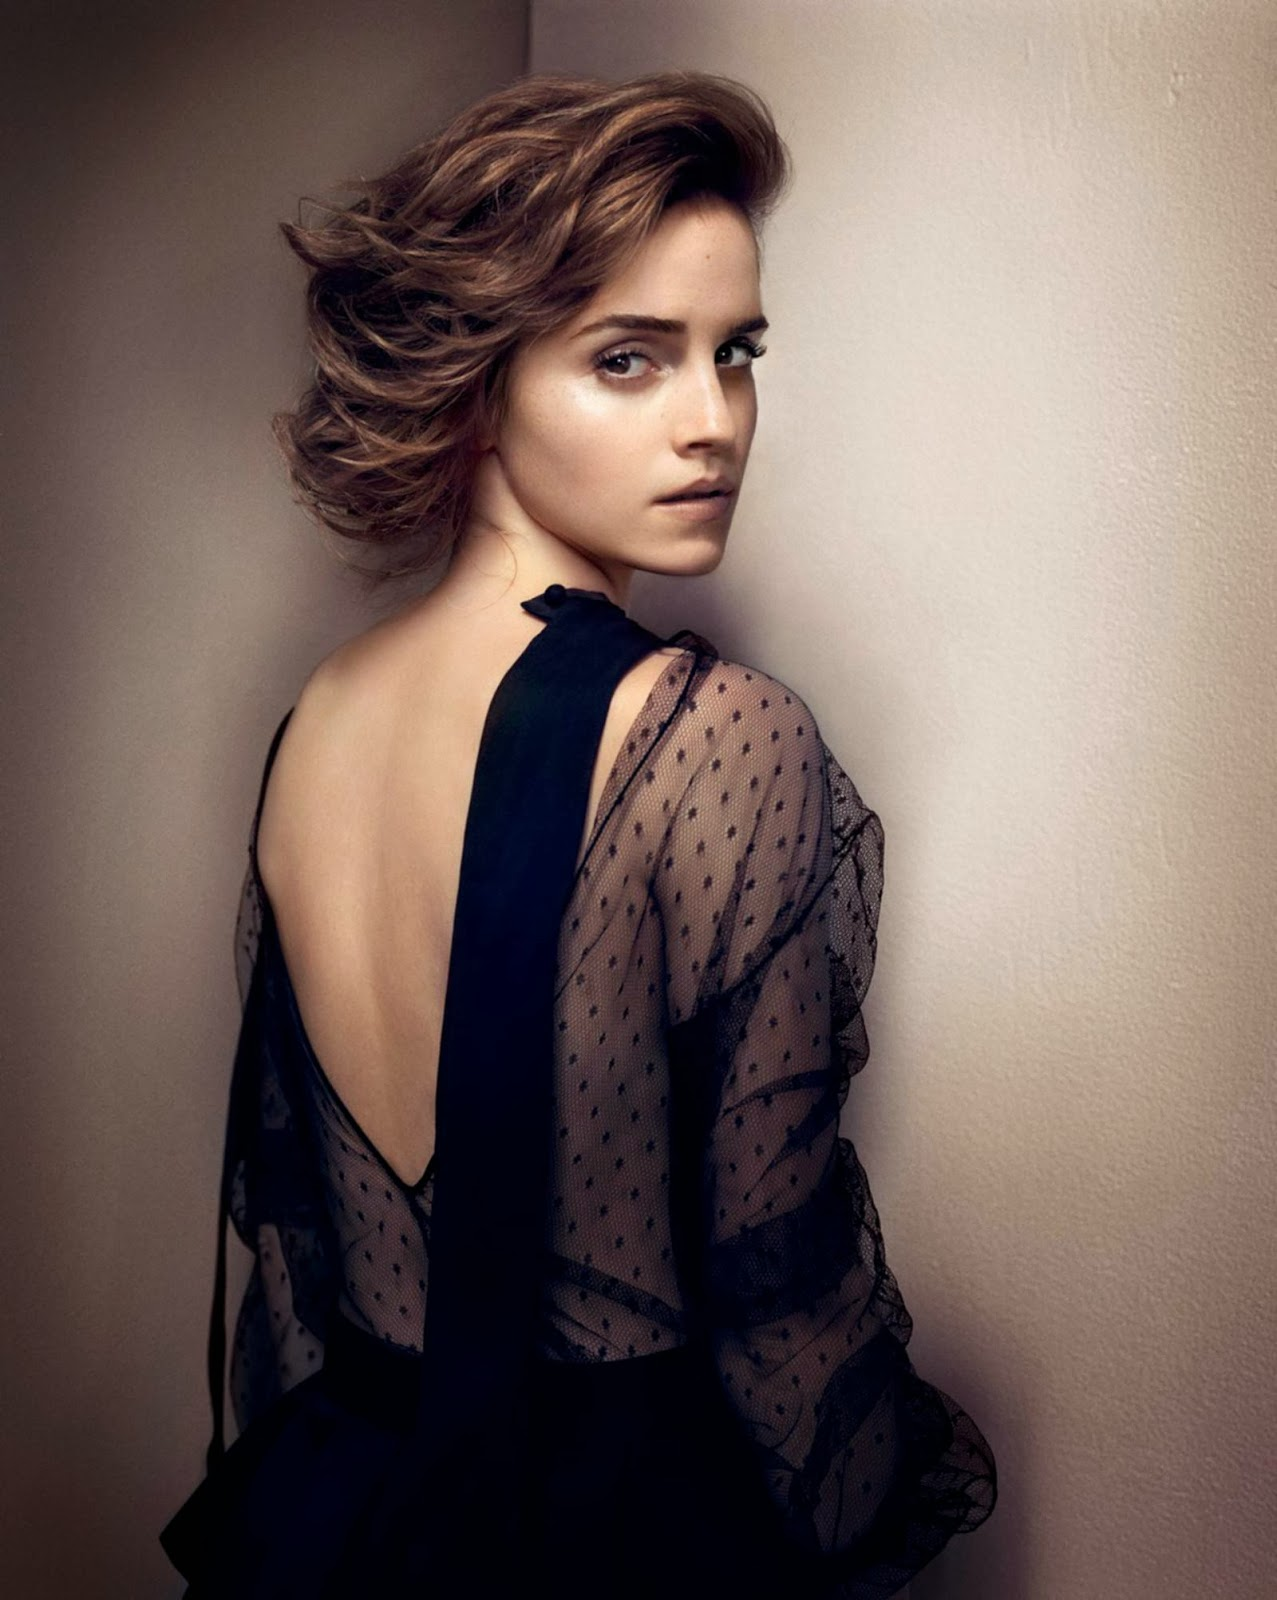 a-guide-to-cool-emma-watson-photos-best-of-folkr-11